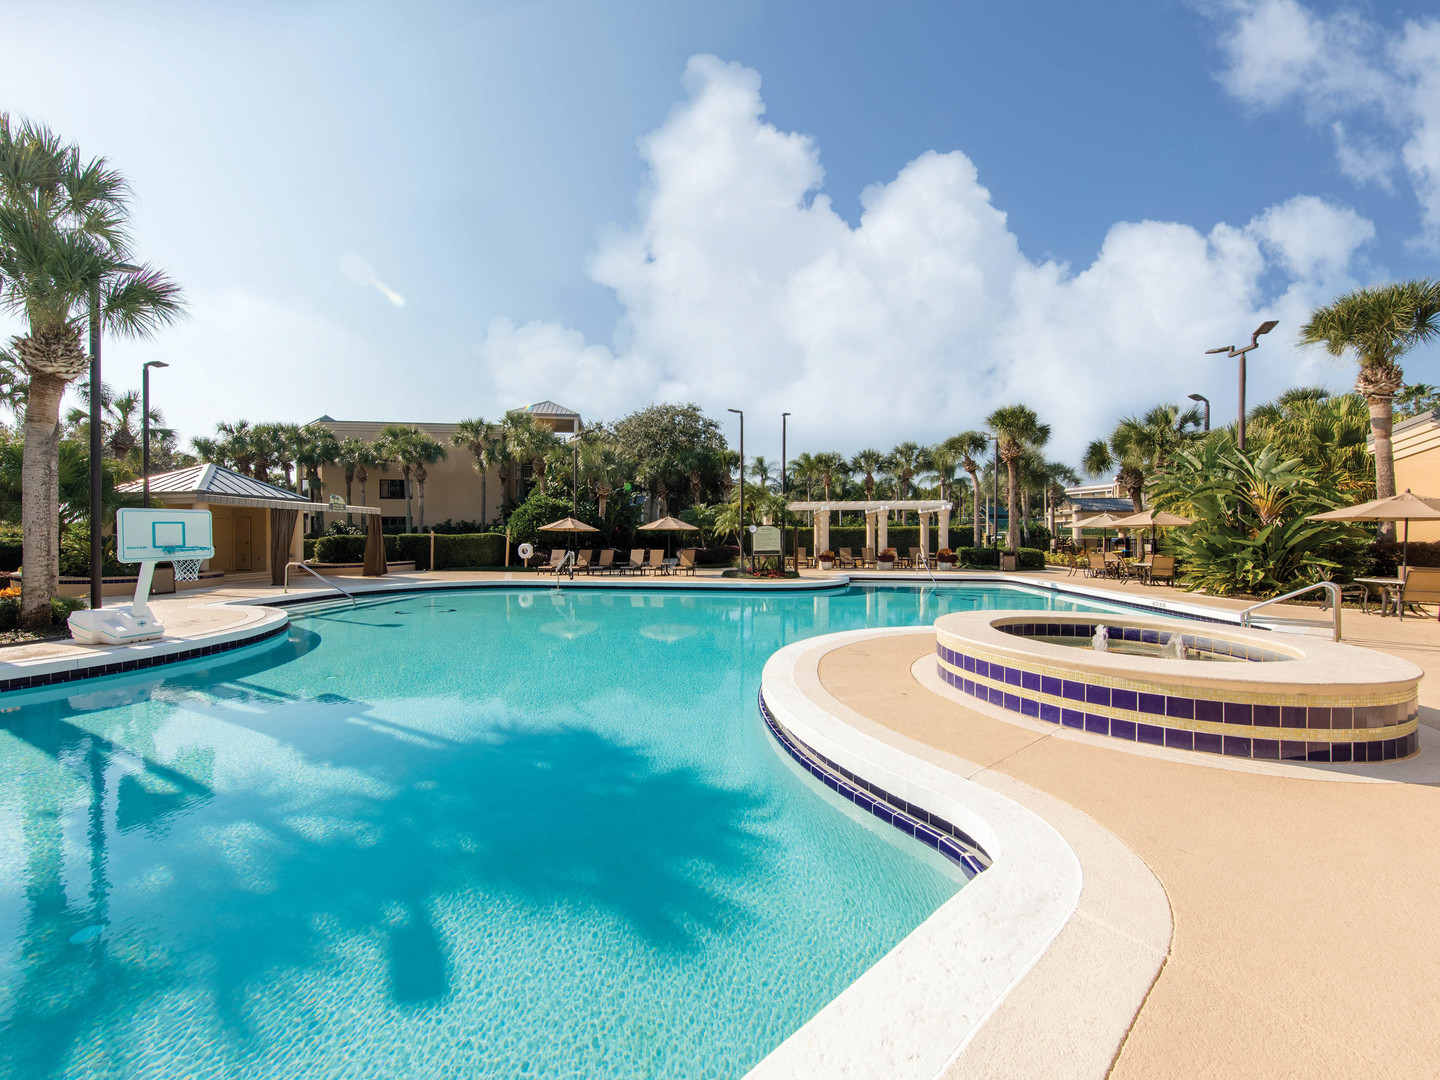 Marriott's Royal Palms Pool. Marriott's Royal Palms is located in Orlando, Florida United States.